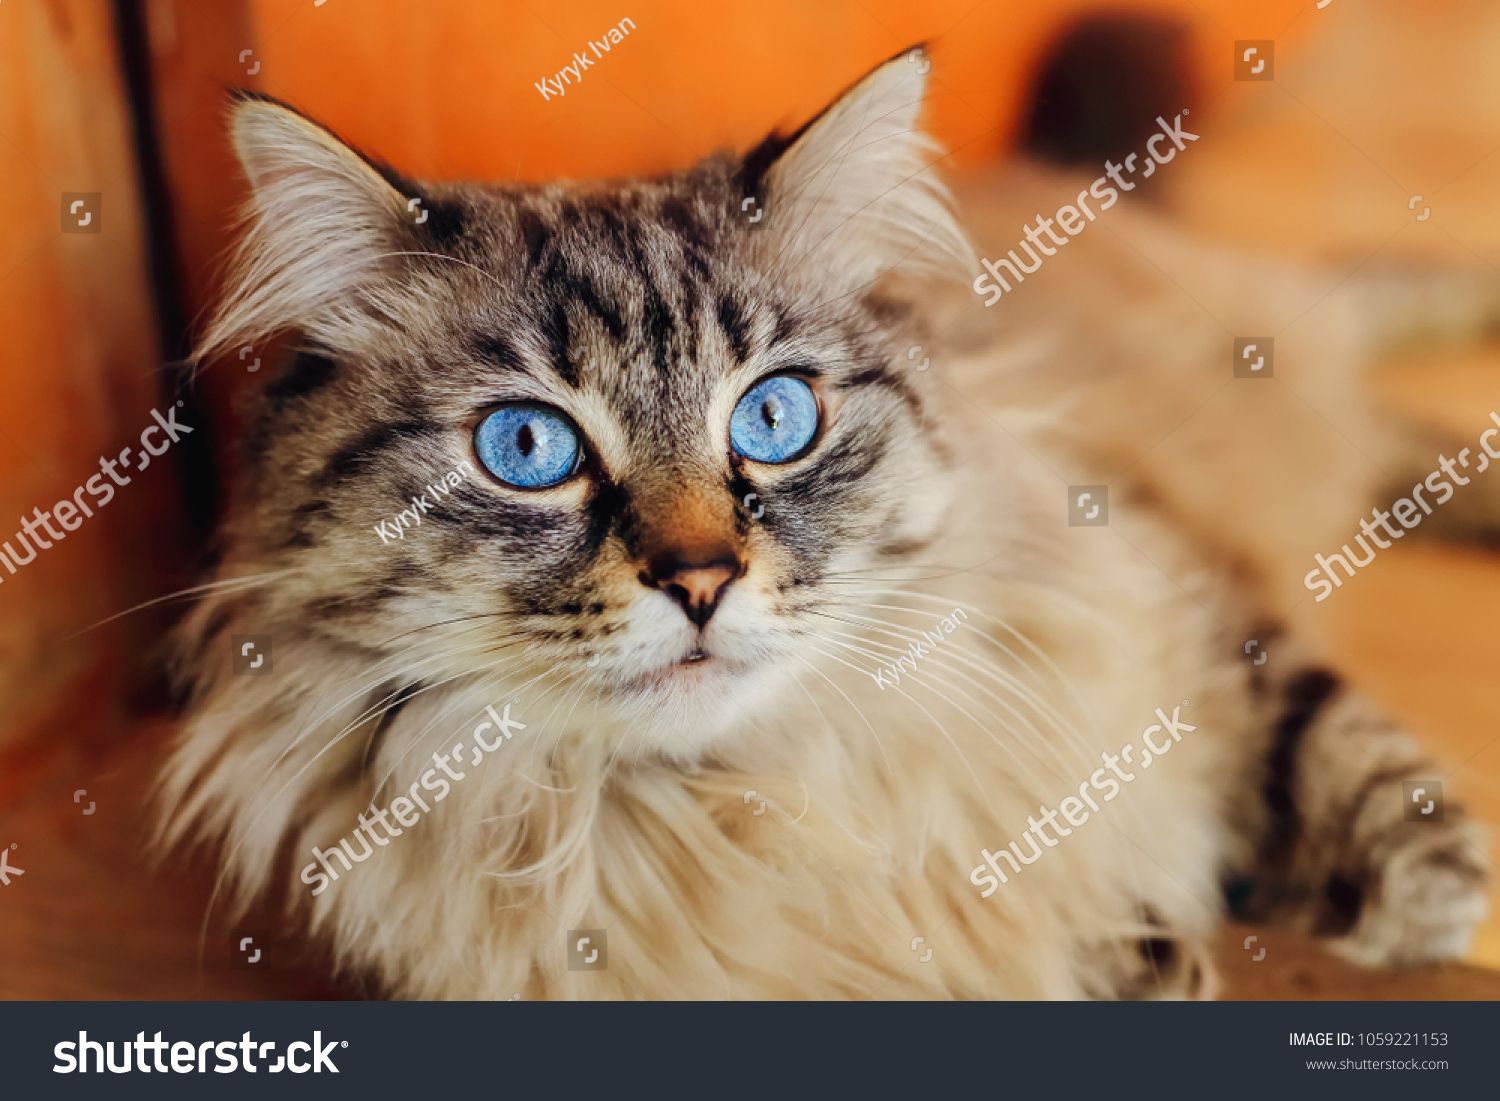 A close-up of a breeding cat that lies on the floor and looks at the camera lens #1059221153